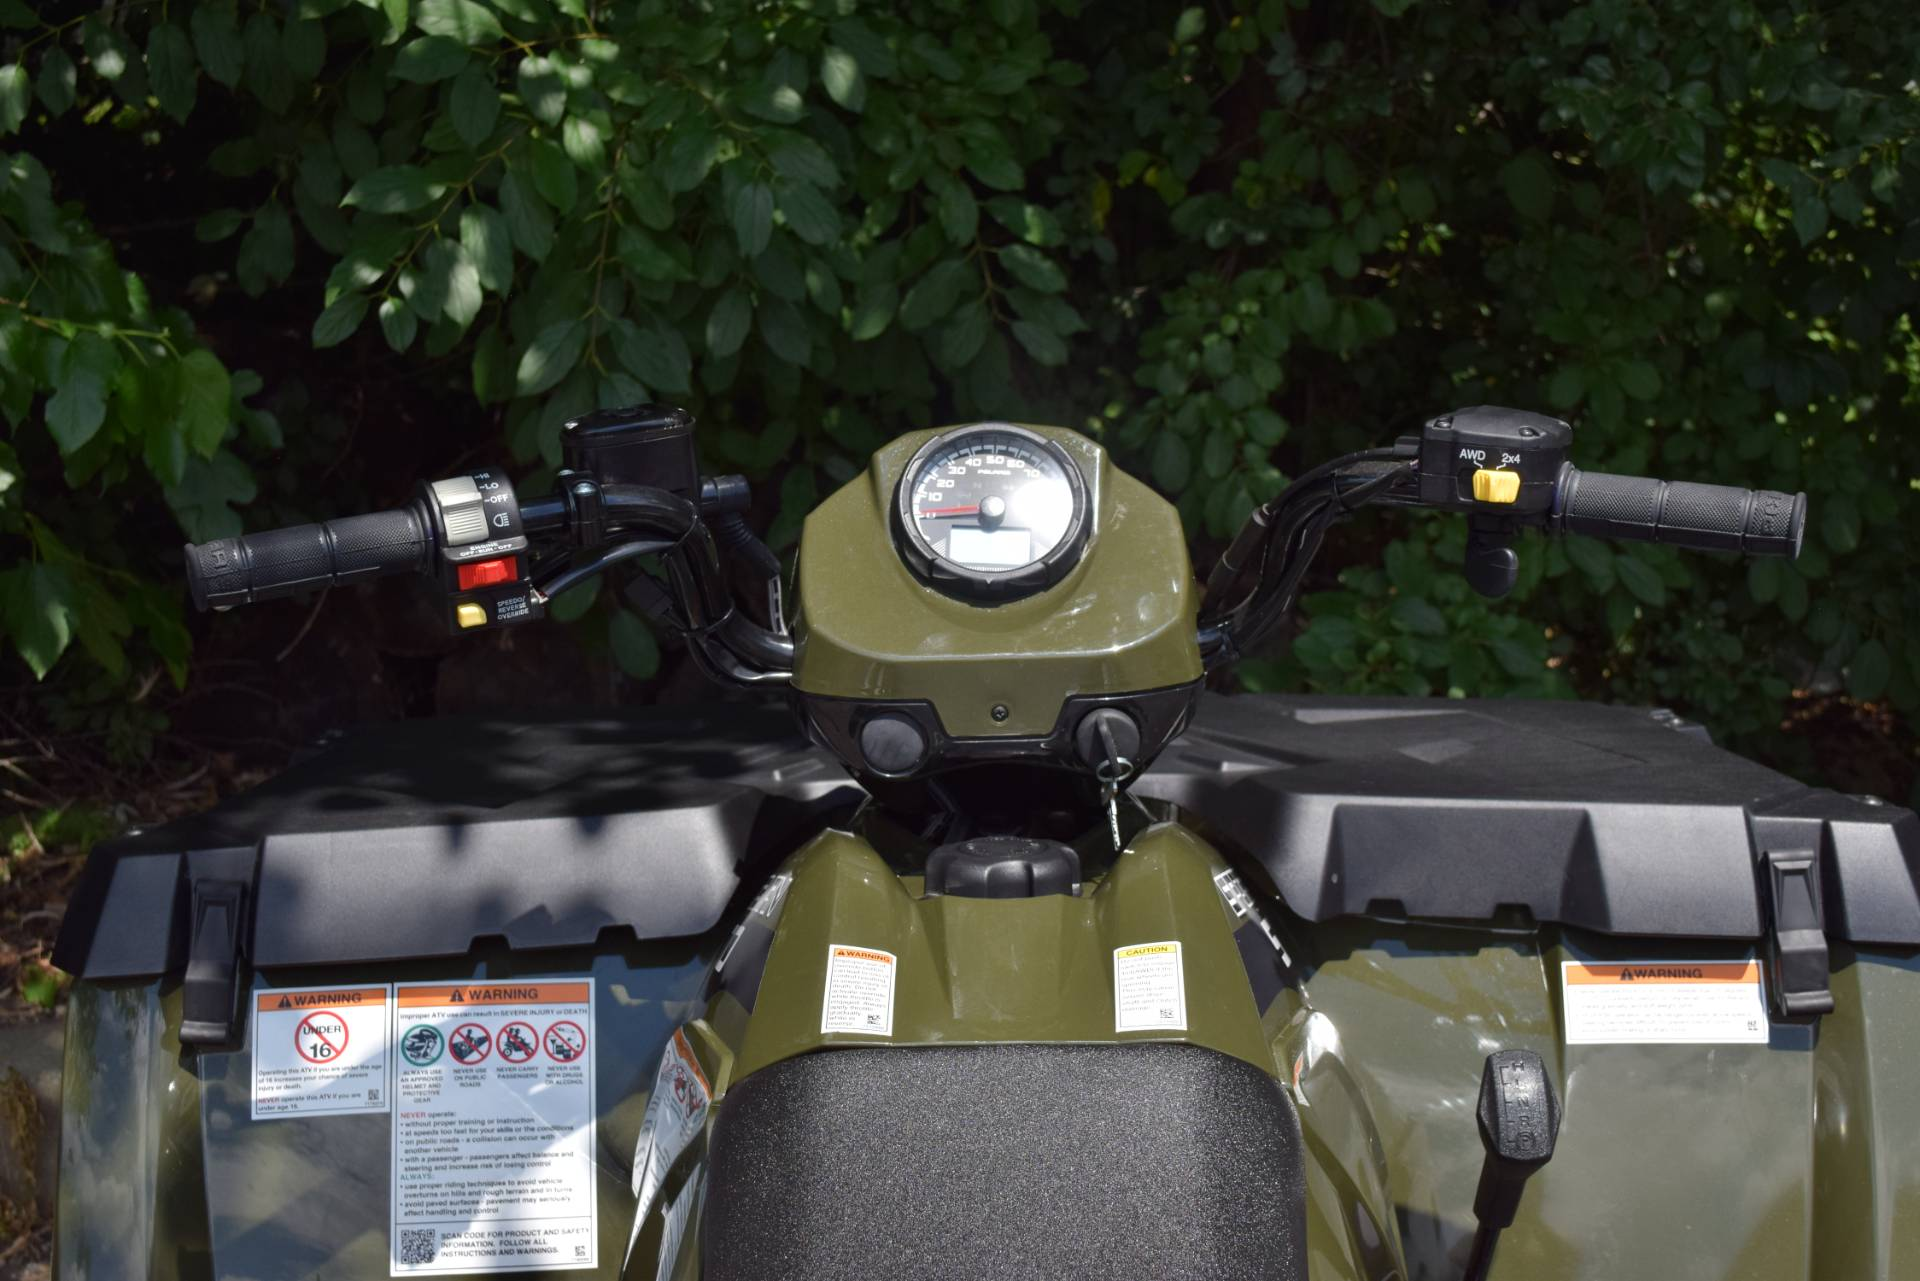 2016 Polaris Sportsman 570 in Wauconda, Illinois - Photo 33